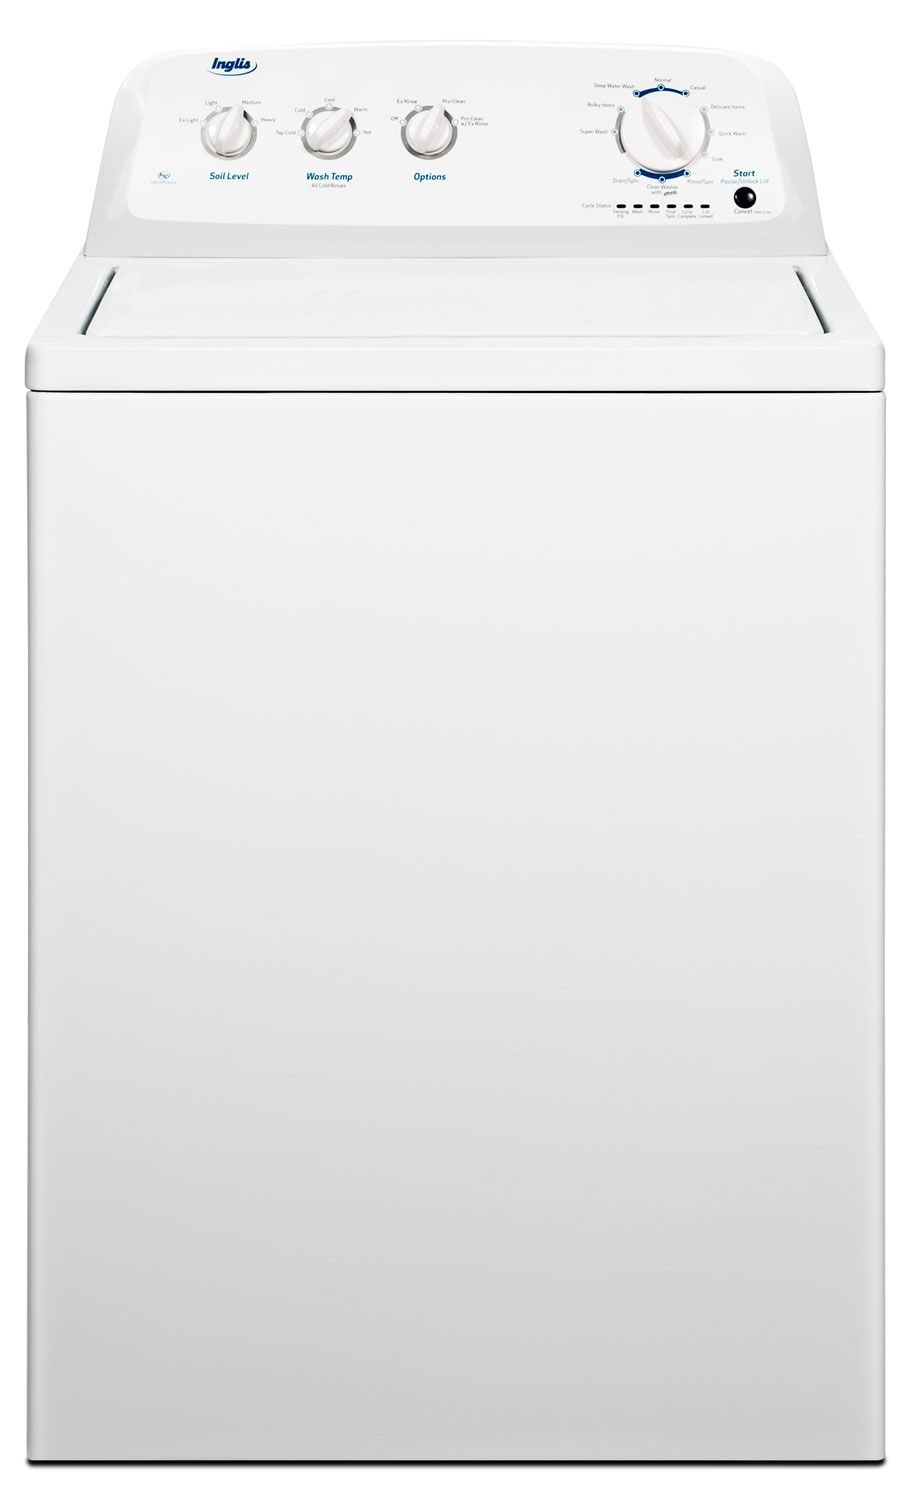 High Efficiency Washers And Dryers Inglis 42 Cu Ft High Efficiency Top Load Washer White The Brick